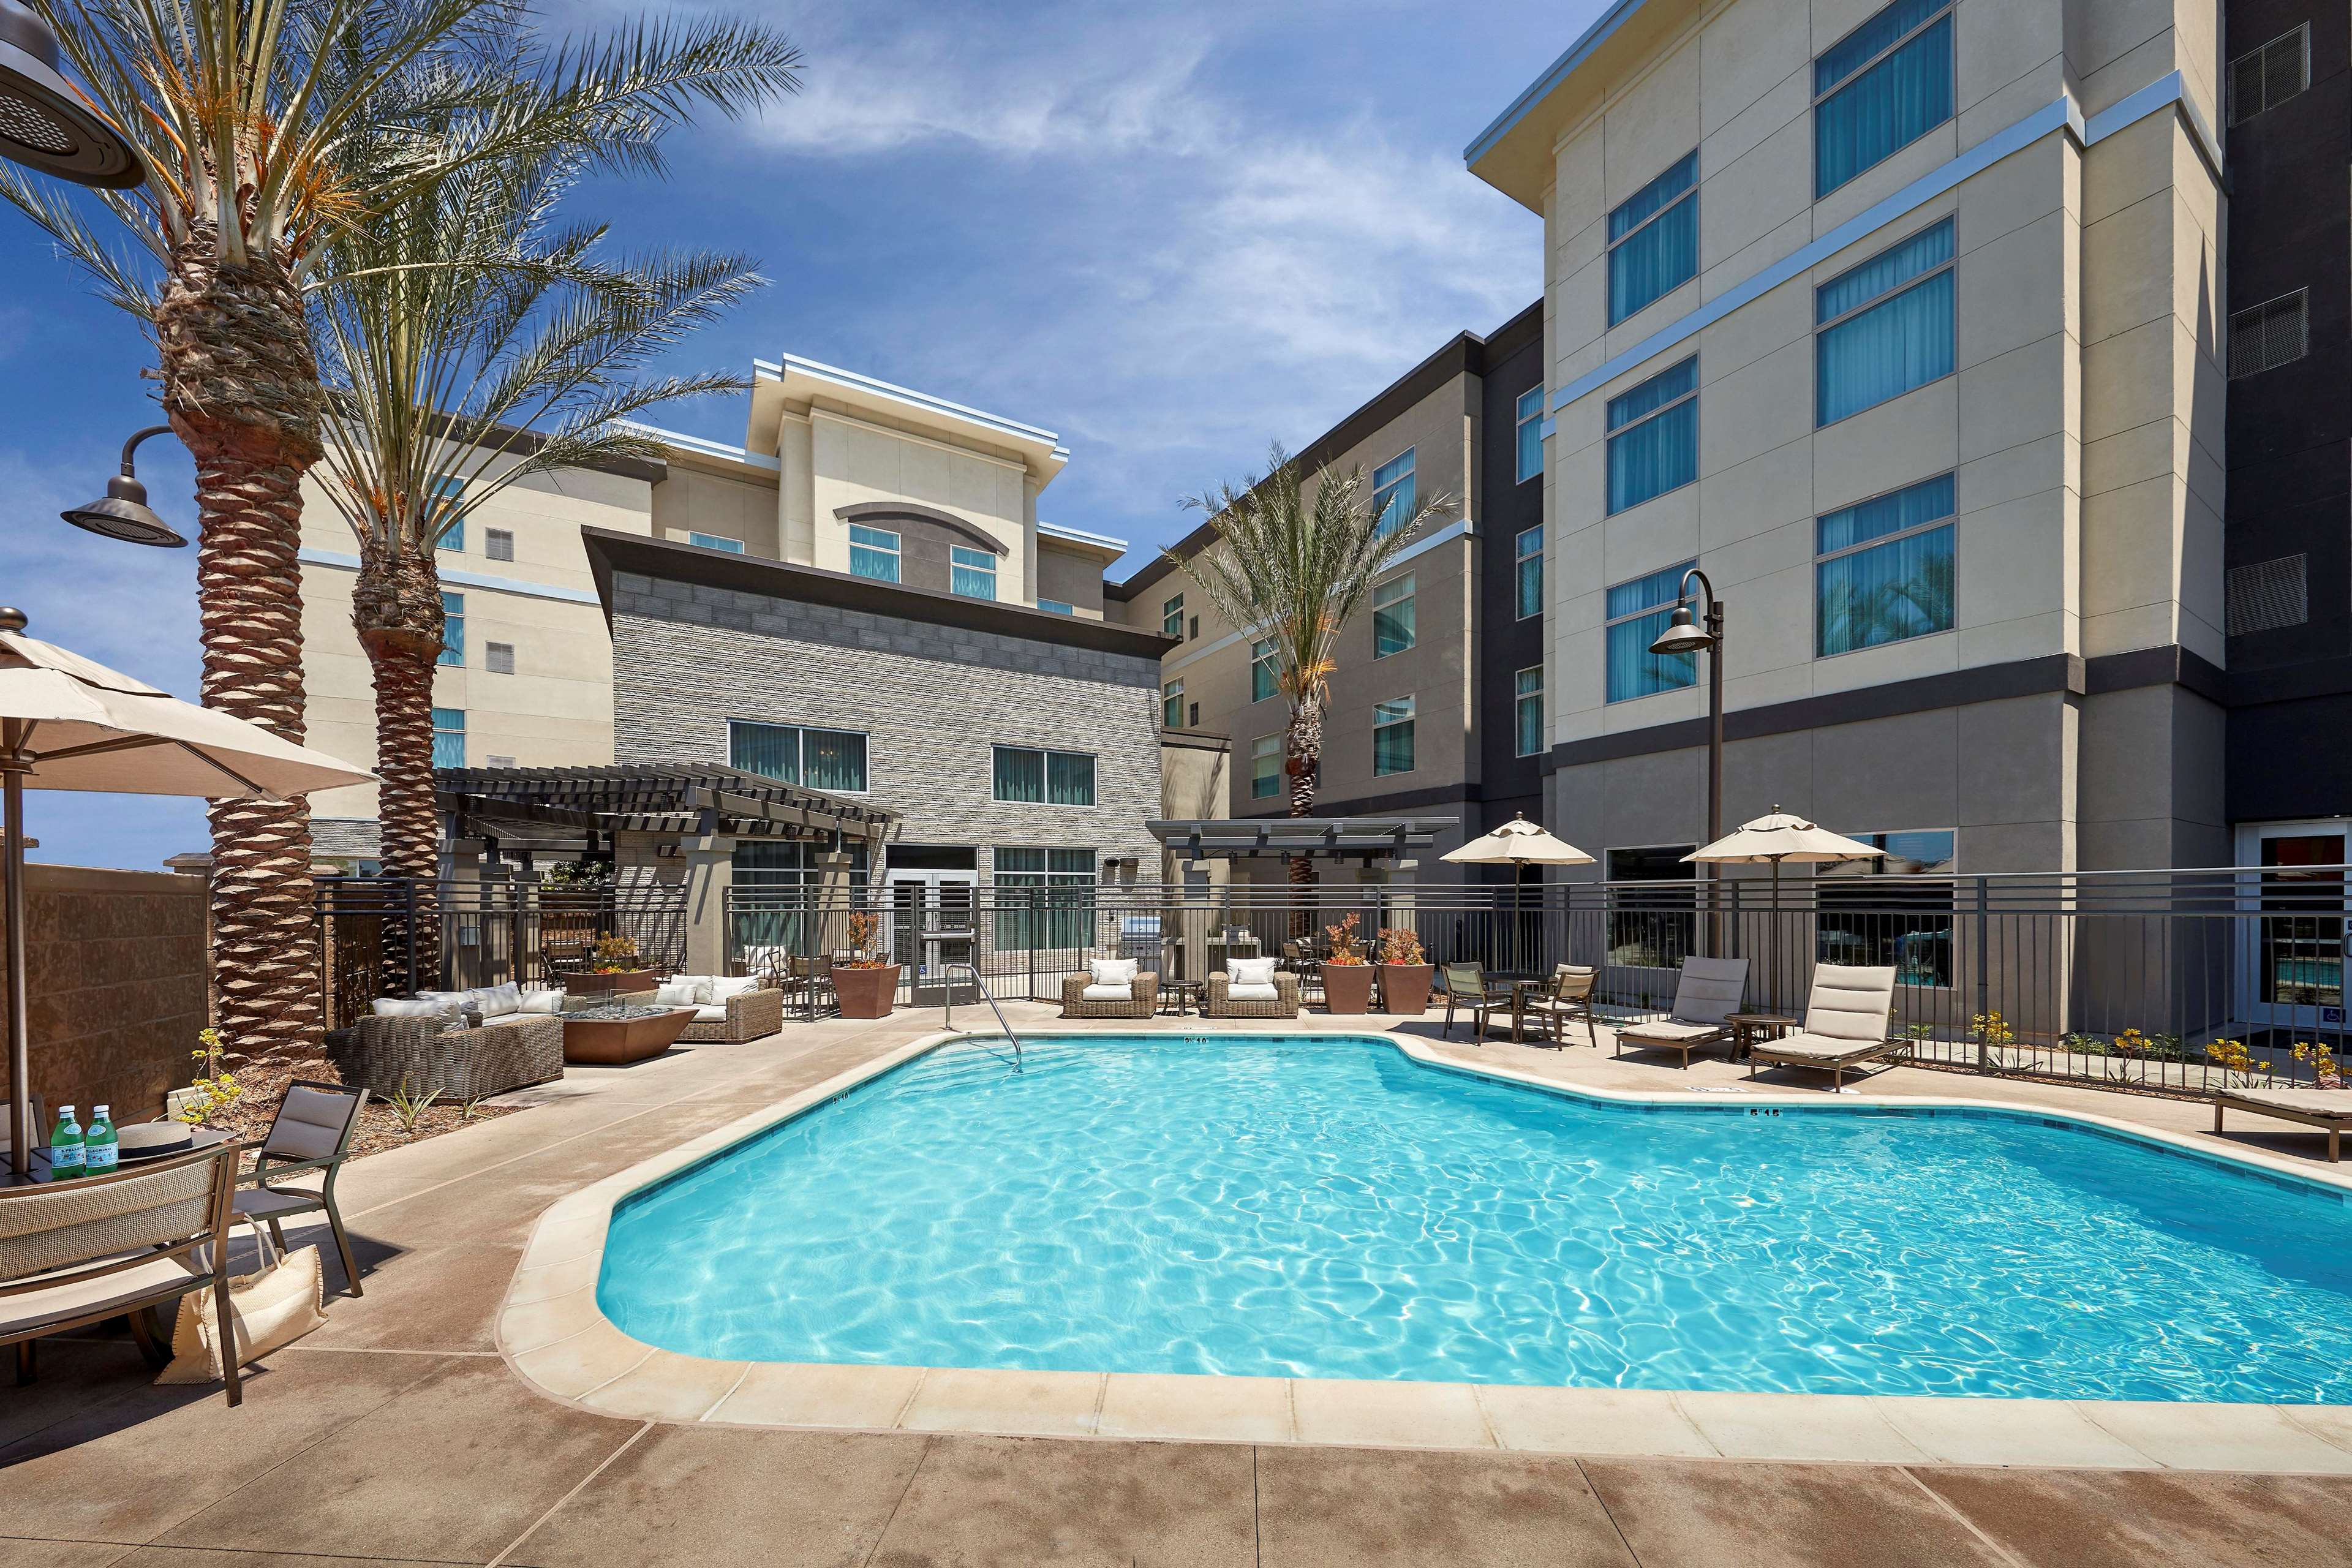 Homewood Suites by Hilton Los Angeles Redondo Beach image 31